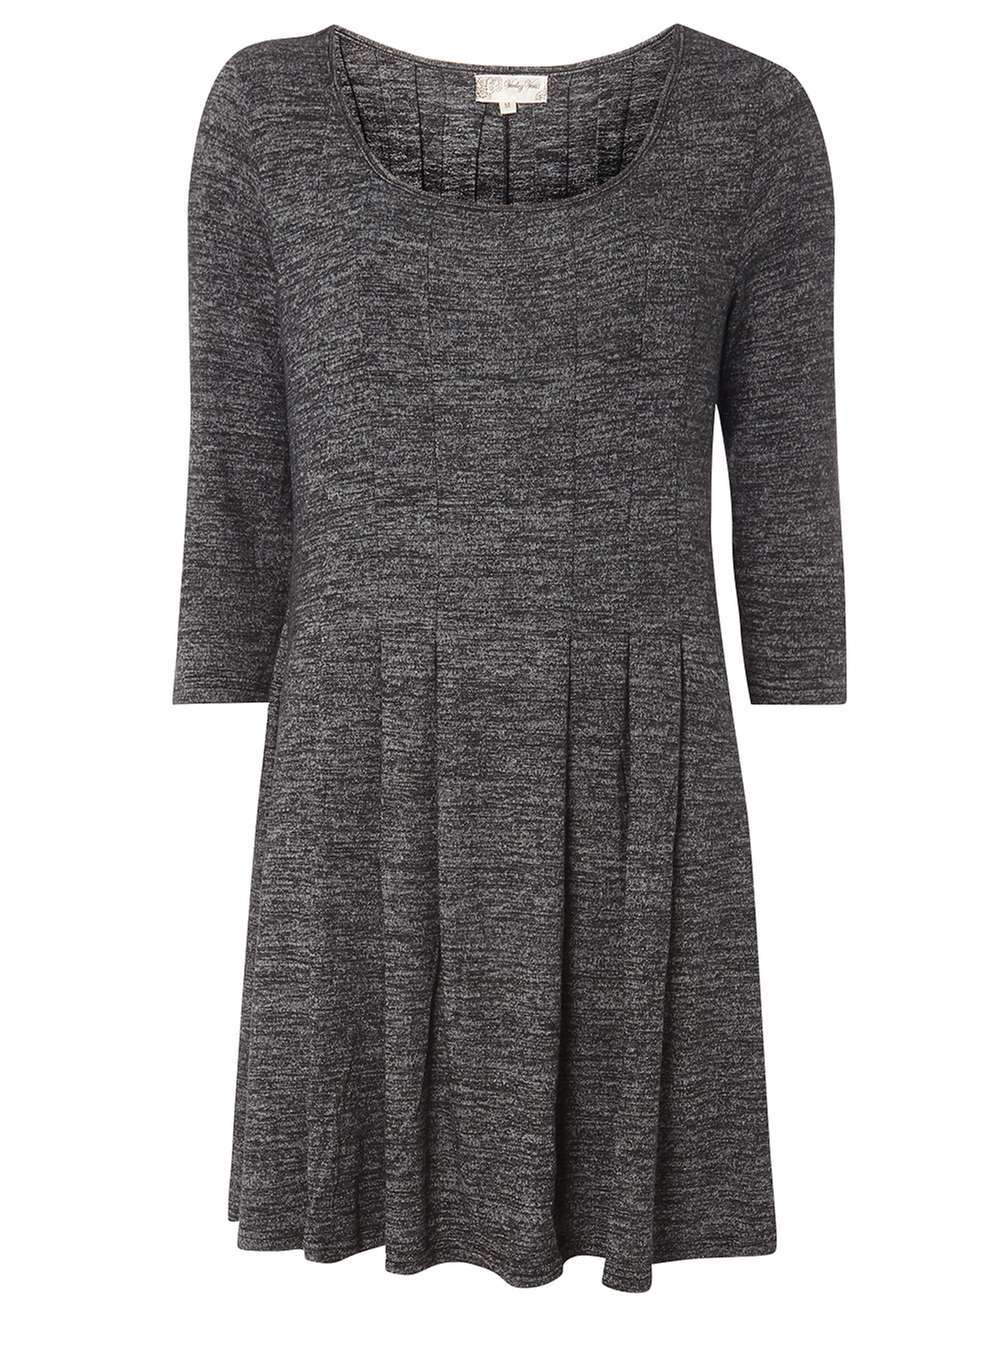 Womens *Voulez Vouz Charcoal 3/4 Sleeve Knitted Dress Grey - length: mid thigh; neckline: round neck; pattern: plain; predominant colour: charcoal; occasions: casual; fit: fitted at waist & bust; style: fit & flare; fibres: polyester/polyamide - stretch; hip detail: subtle/flattering hip detail; sleeve length: 3/4 length; sleeve style: standard; pattern type: fabric; texture group: jersey - stretchy/drapey; wardrobe: basic; season: a/w 2016